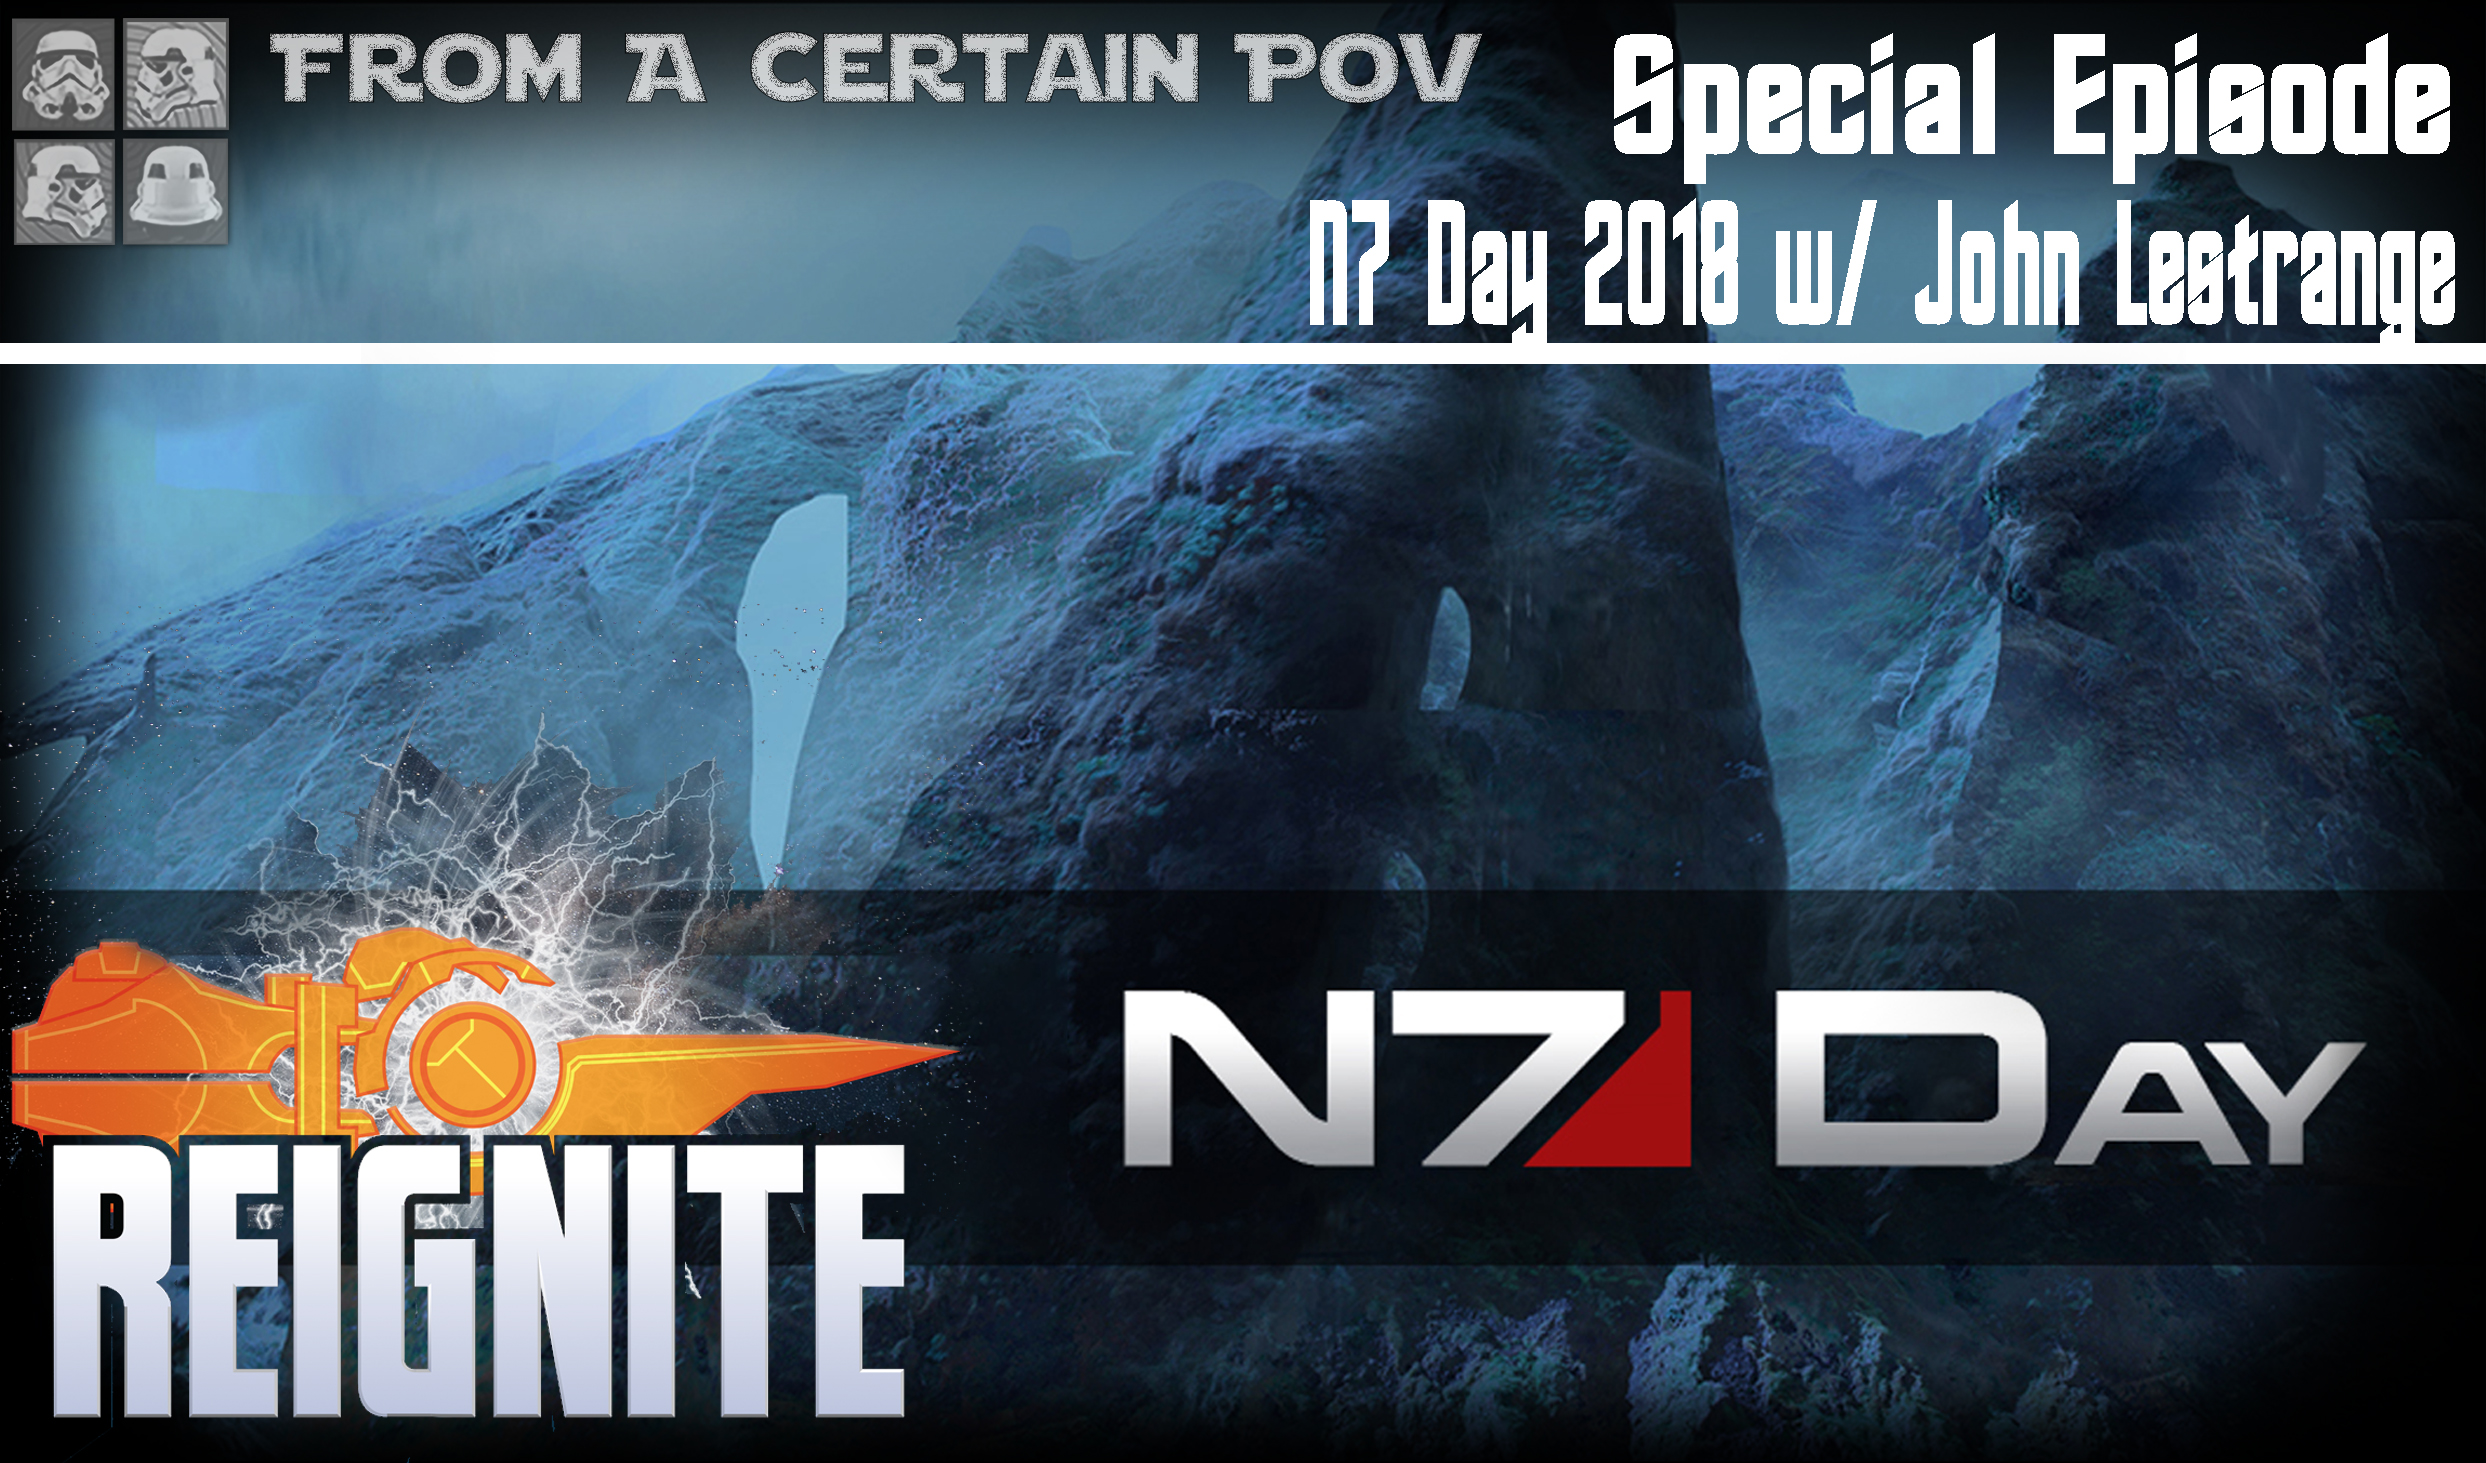 Special Episode - N7 Day.jpg